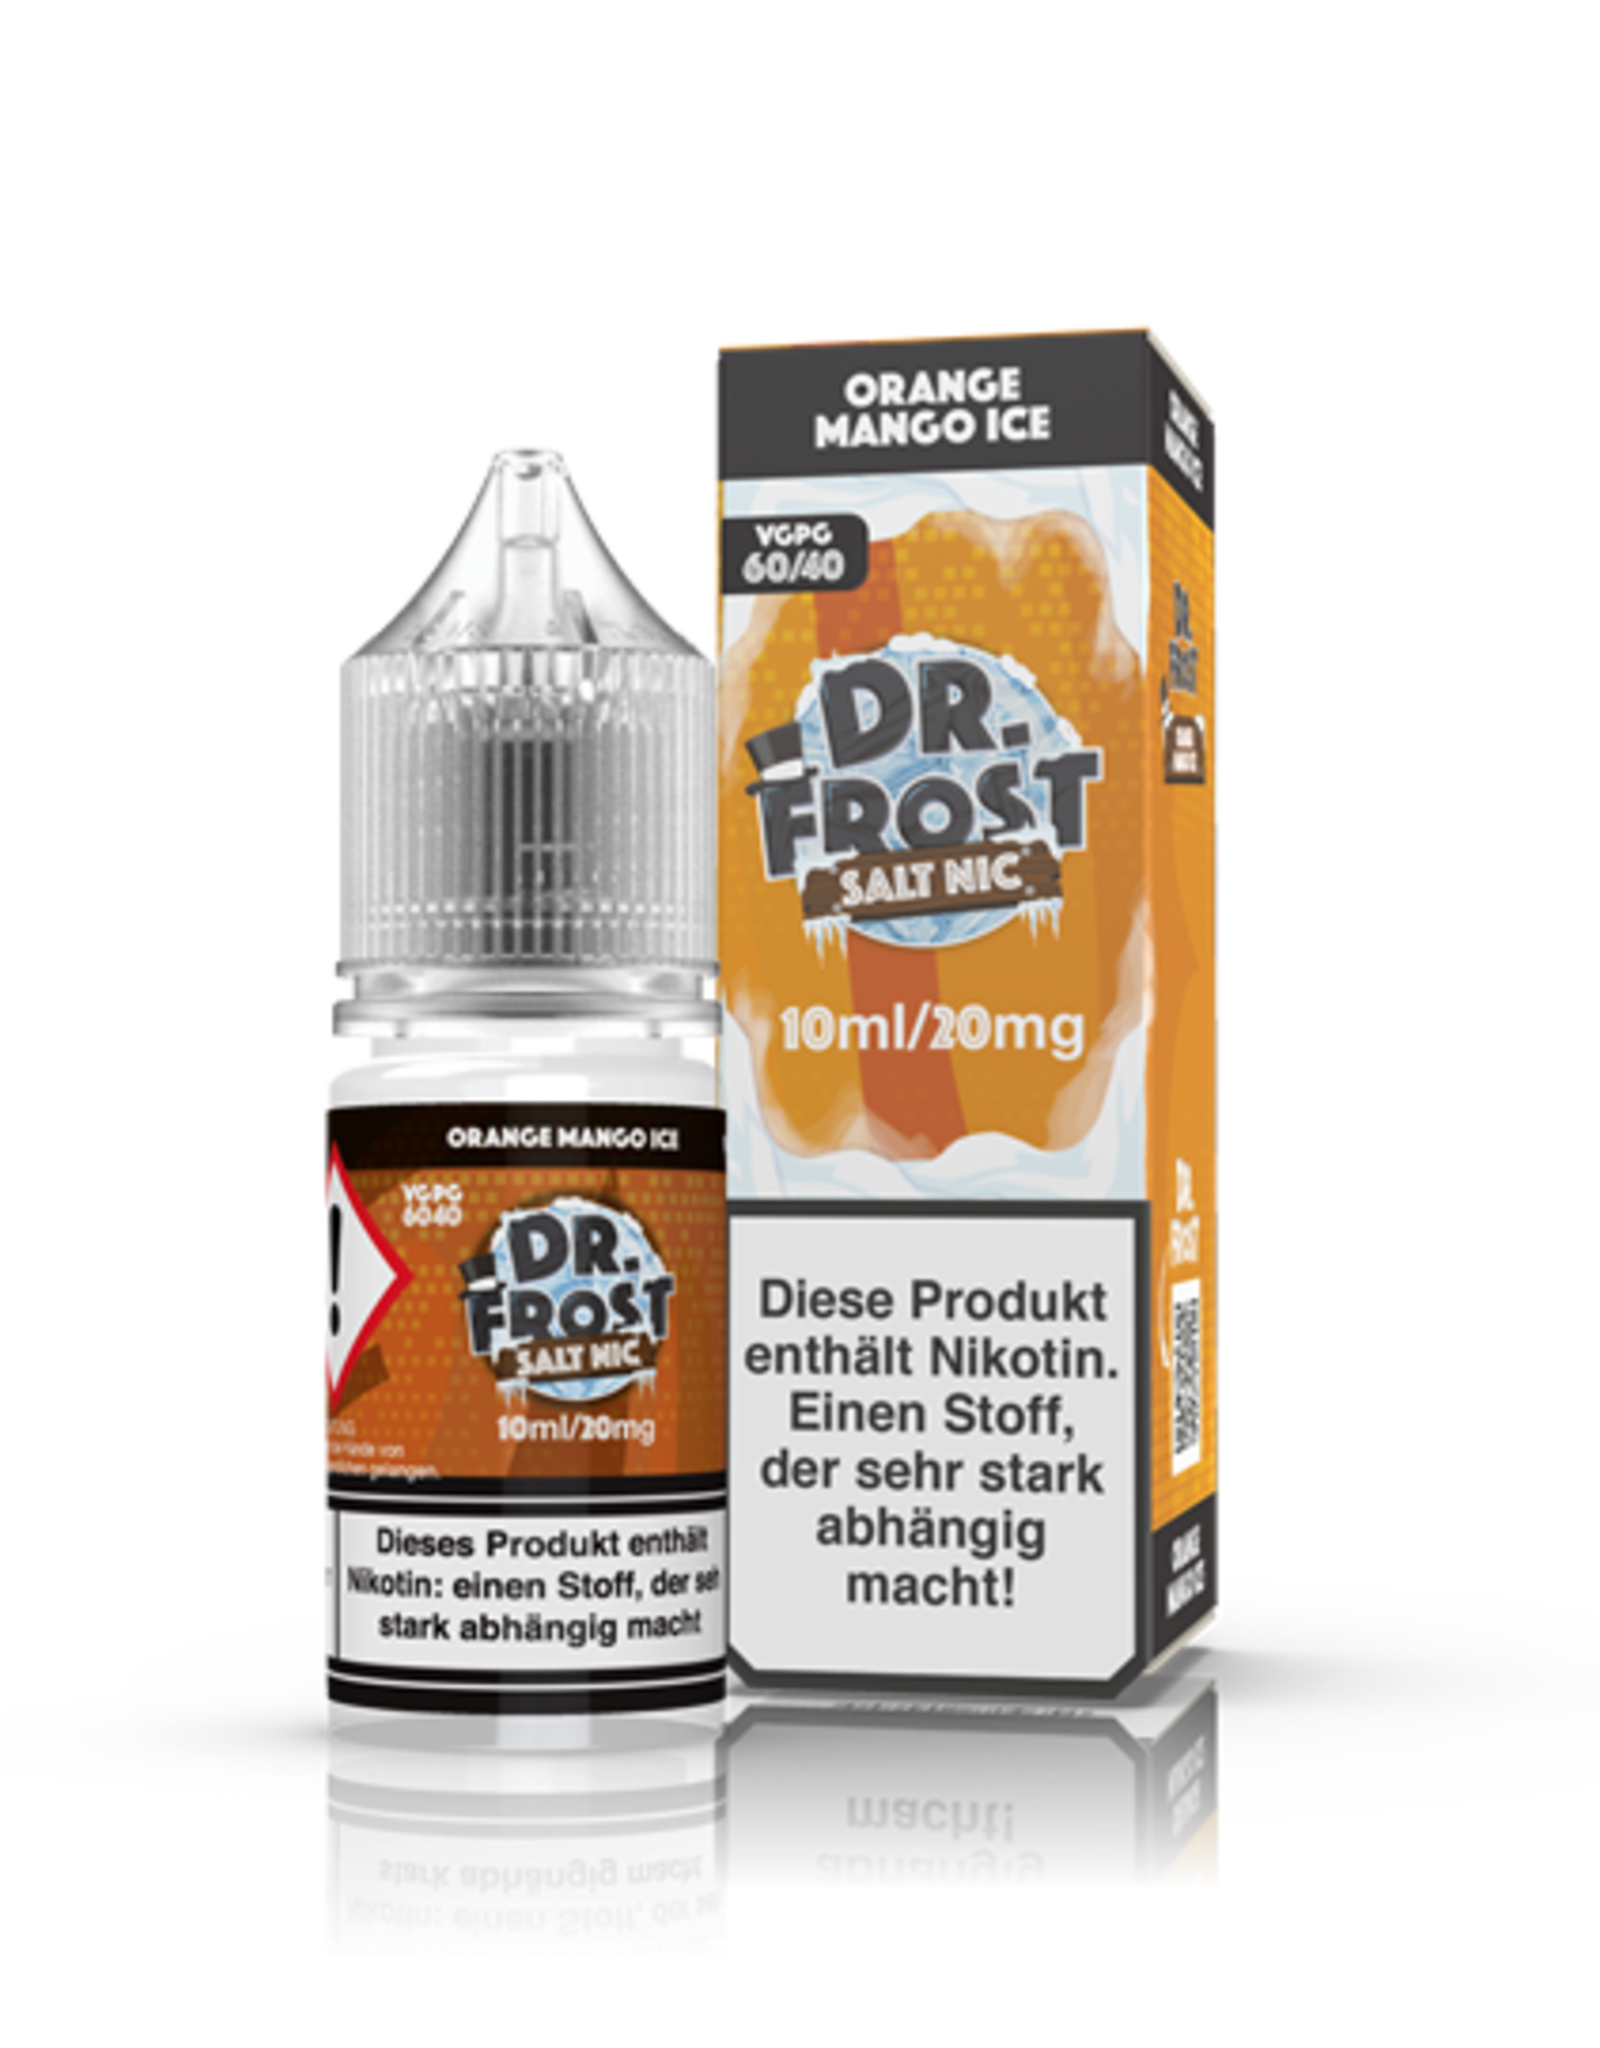 Dr. Frost Dr. Frost - Orange Mango Ice 10ml 20mg